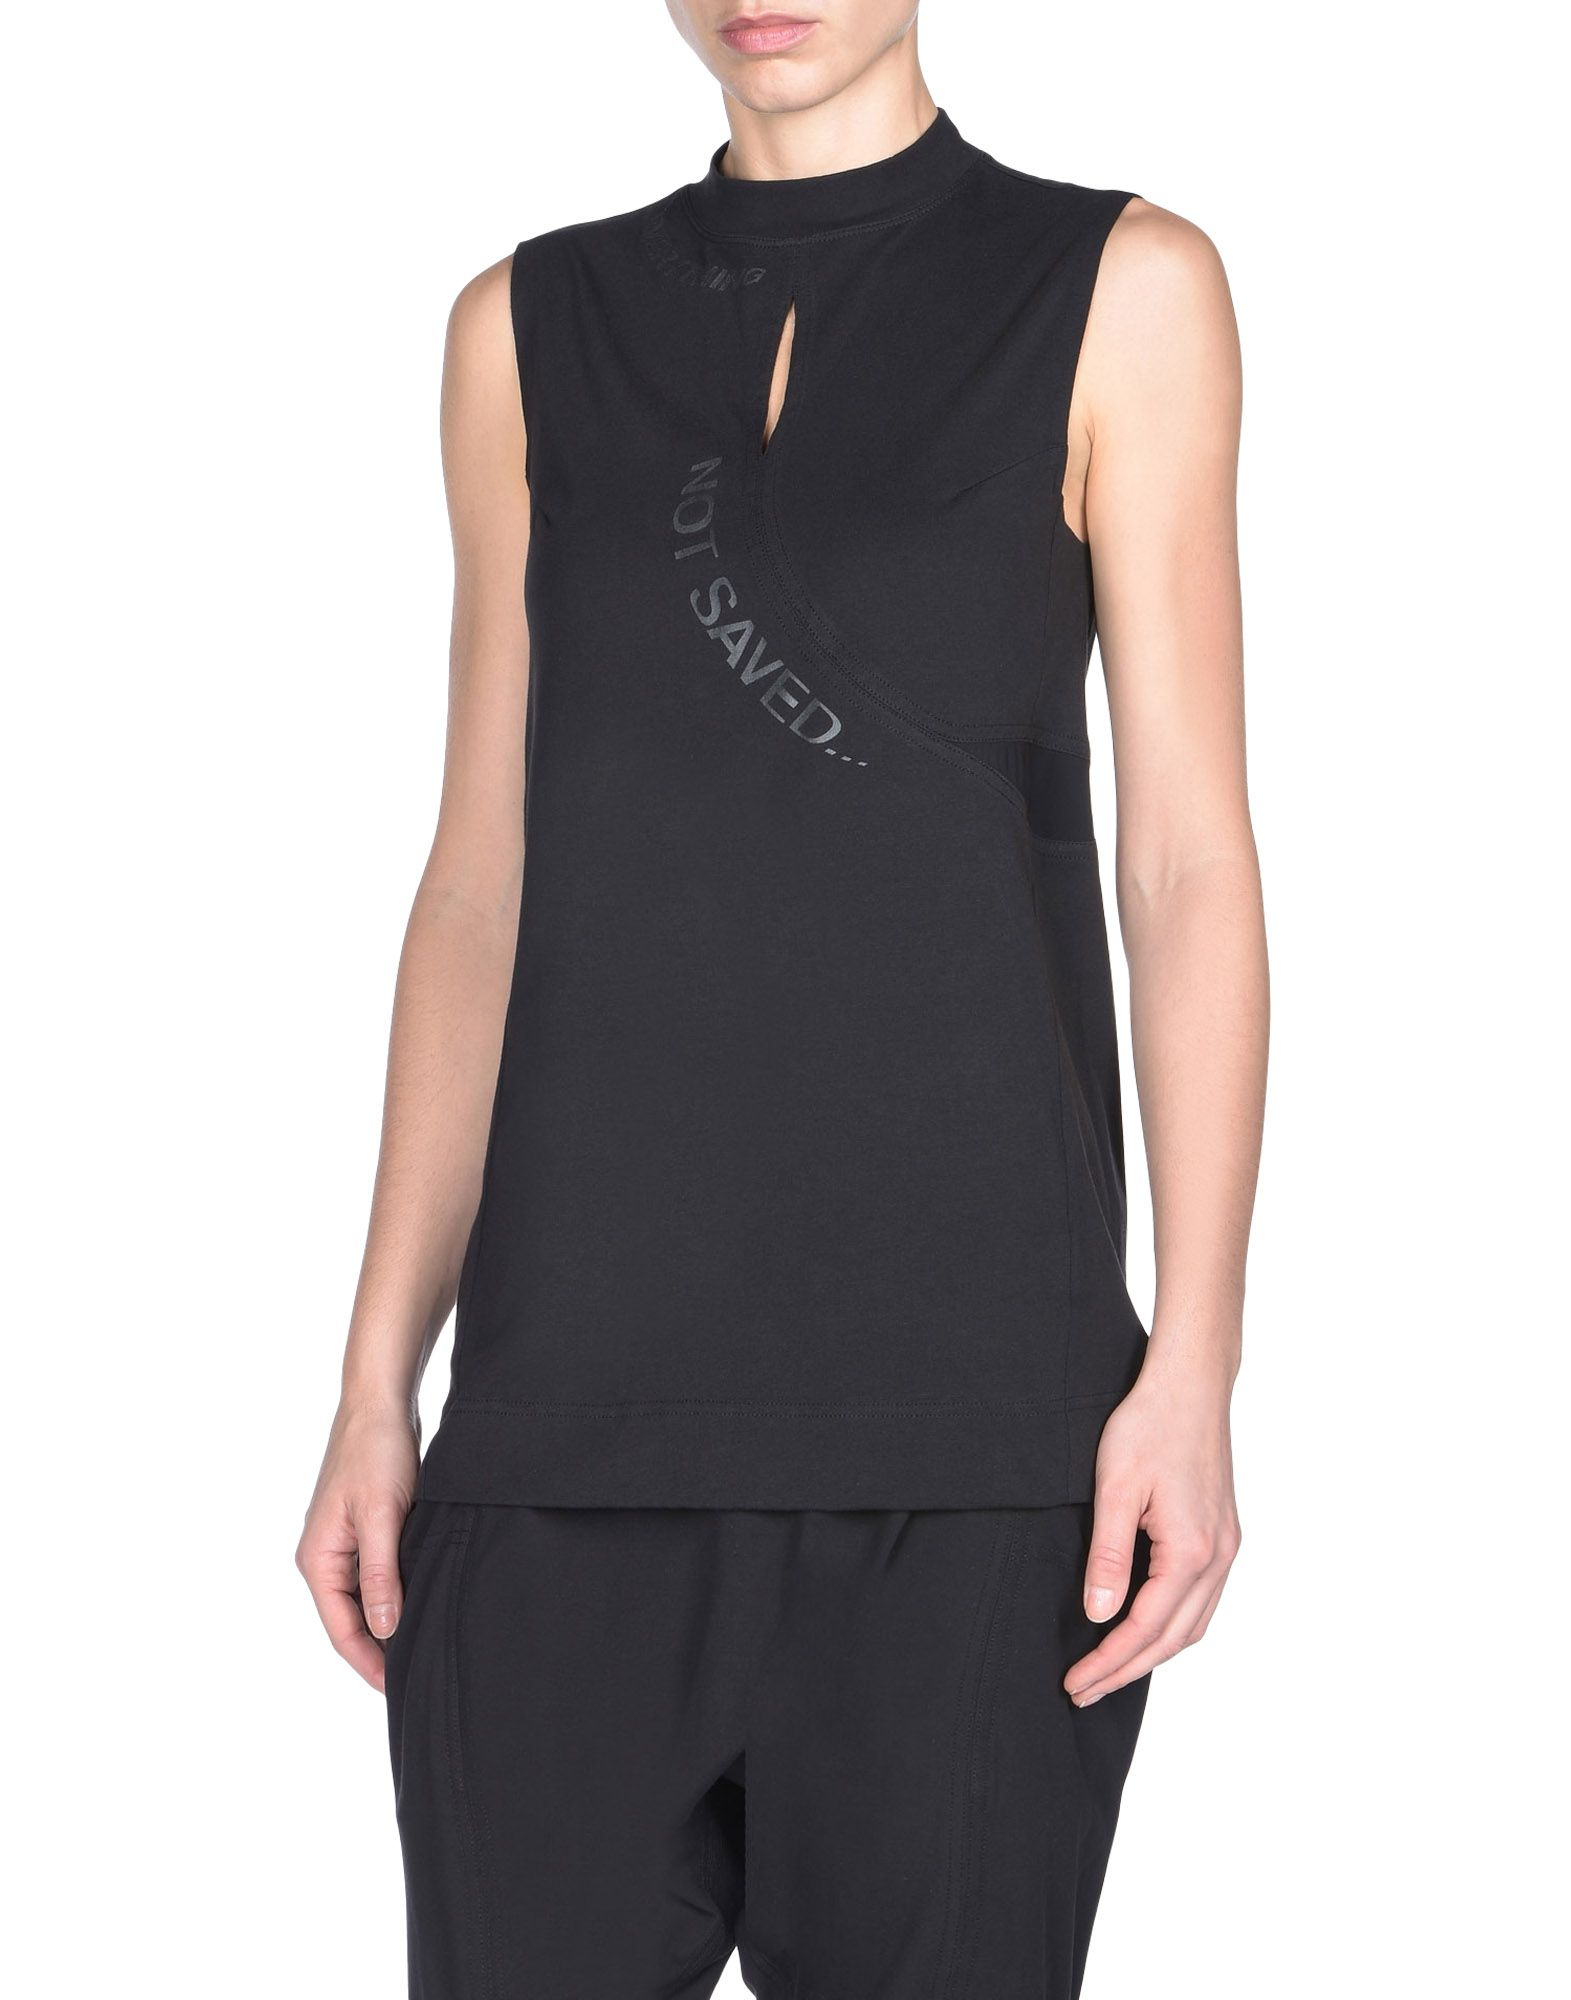 Y-3 STATEMENT TANK TOP TEES & POLOS woman Y-3 adidas